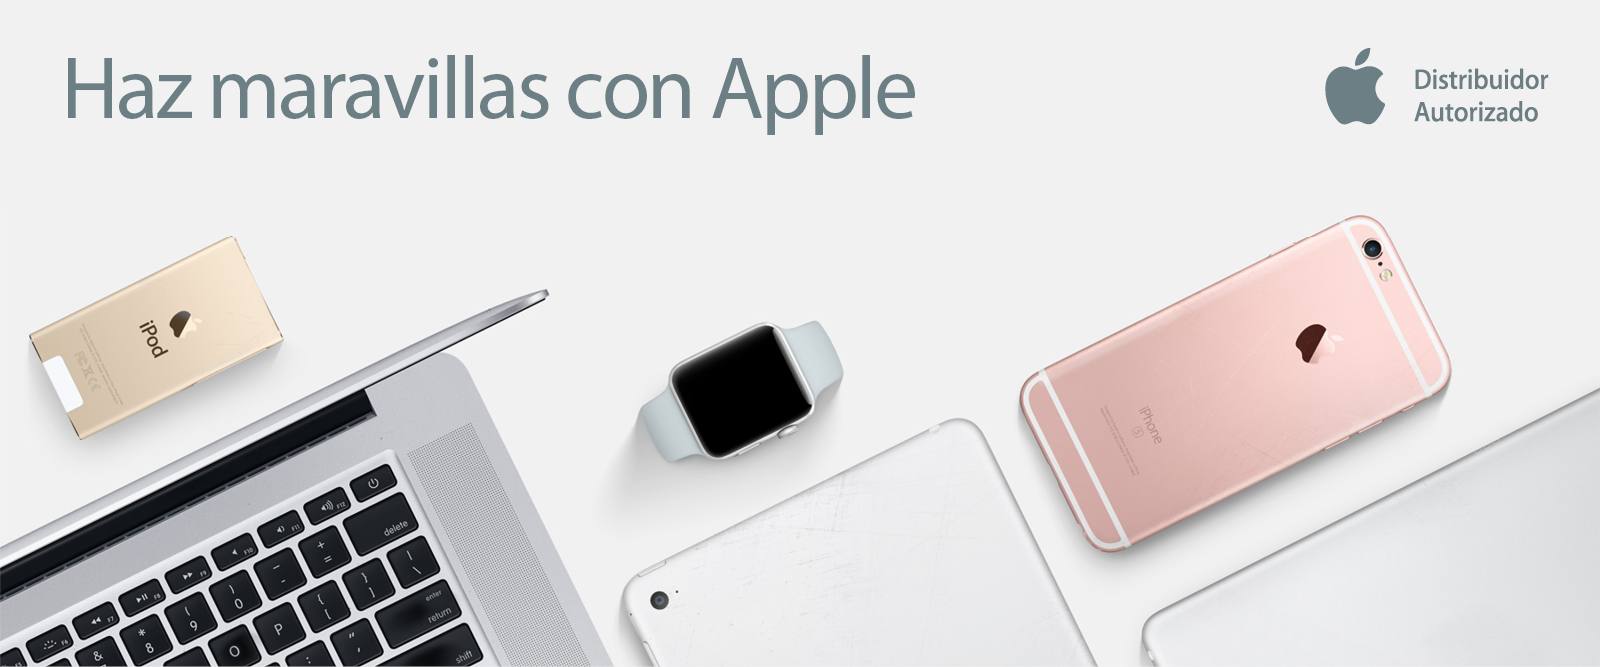 Haz maravillas con Apple